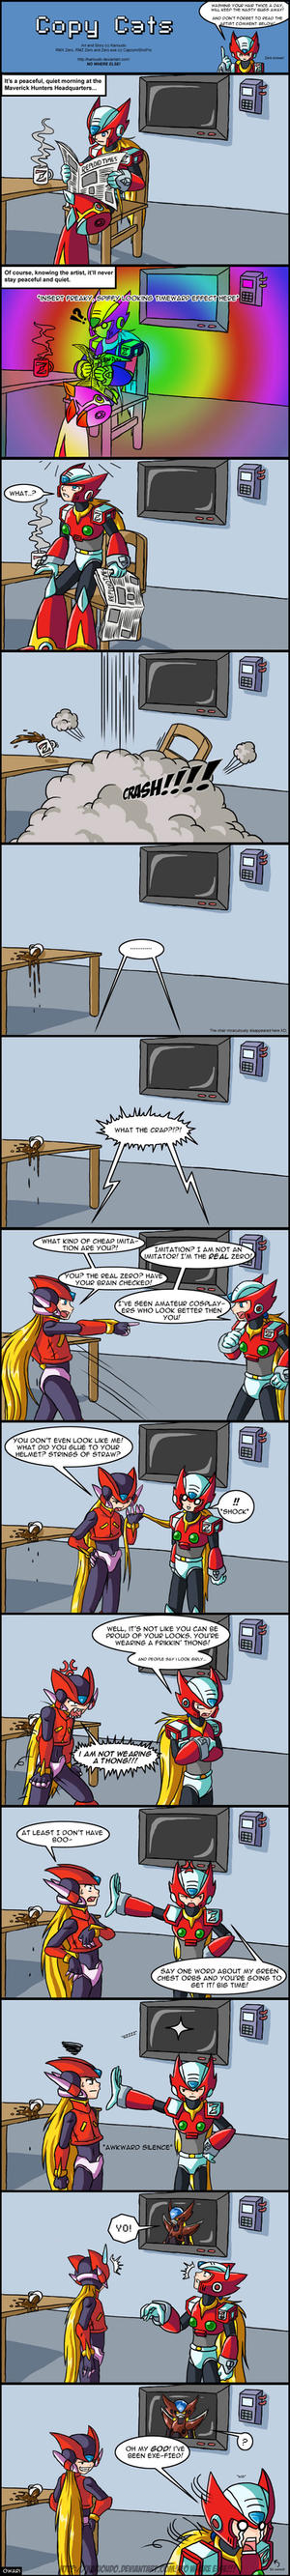 Comic - Copy Cats by Karioudo